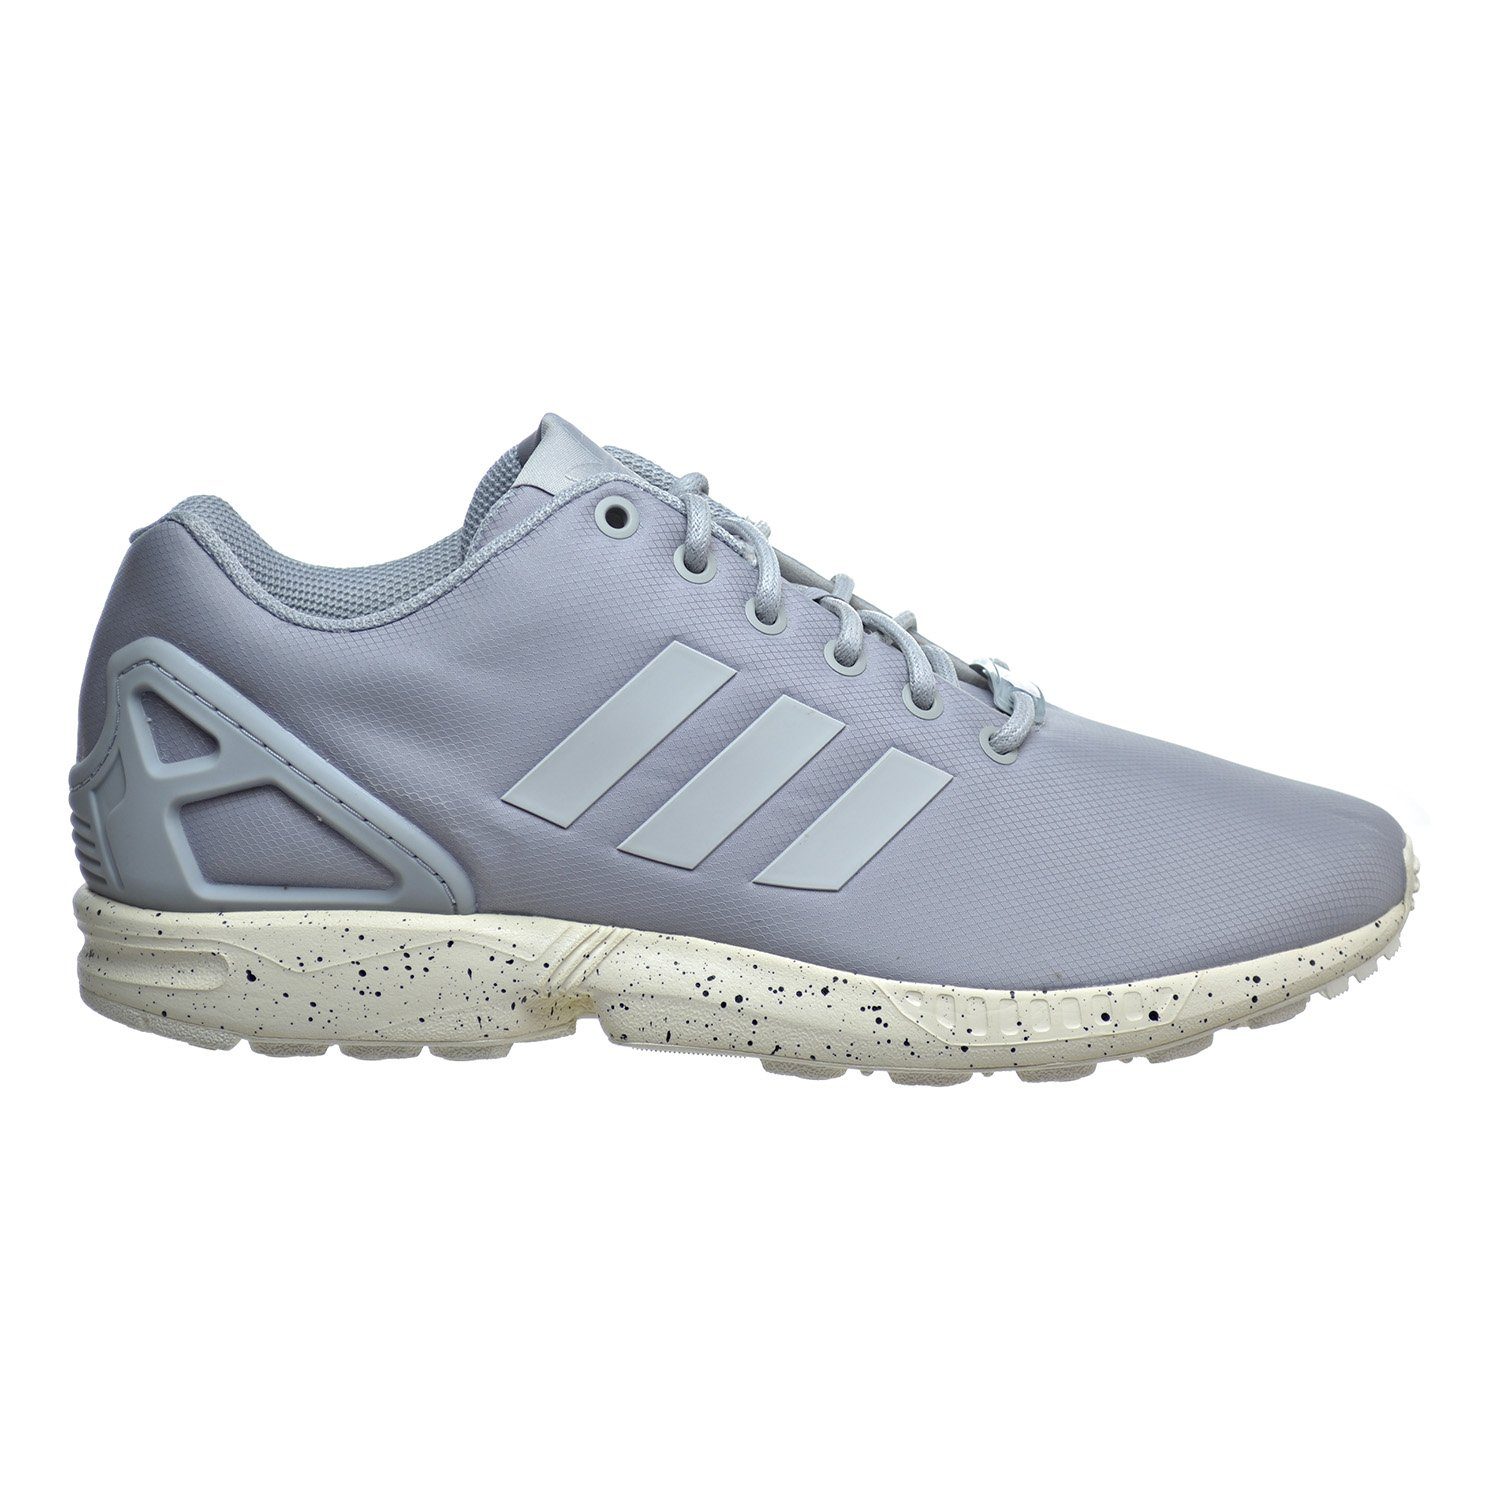 4afb521ab36d5 adidas Originals Men s zx Flux Fashion Sneaker Clear Onix Grey Chalk White  11.5 M